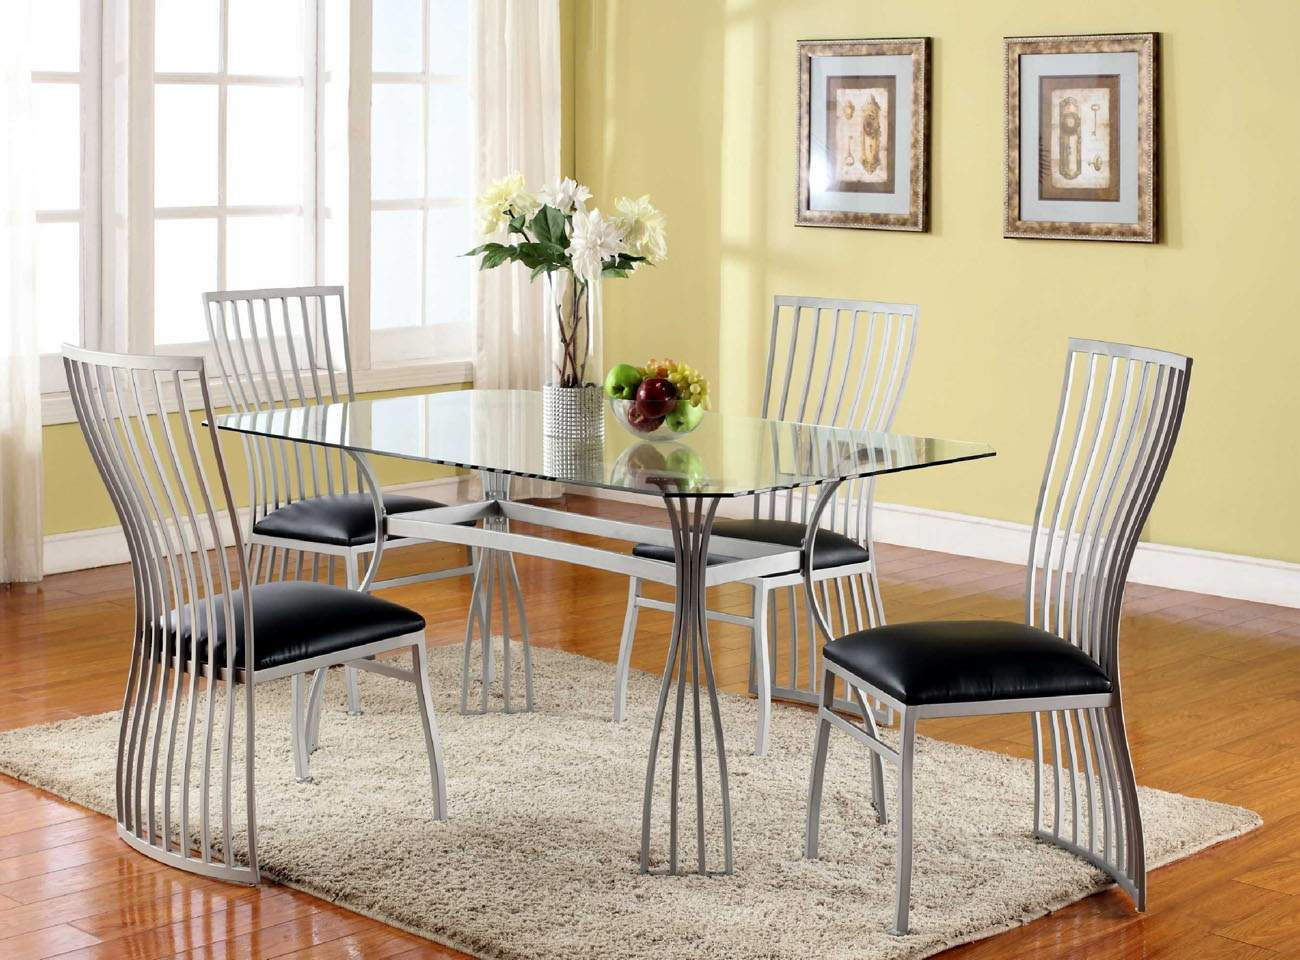 steel chair dining table frost king lawn webbing graceful rectangular clear glass top leather designer 5